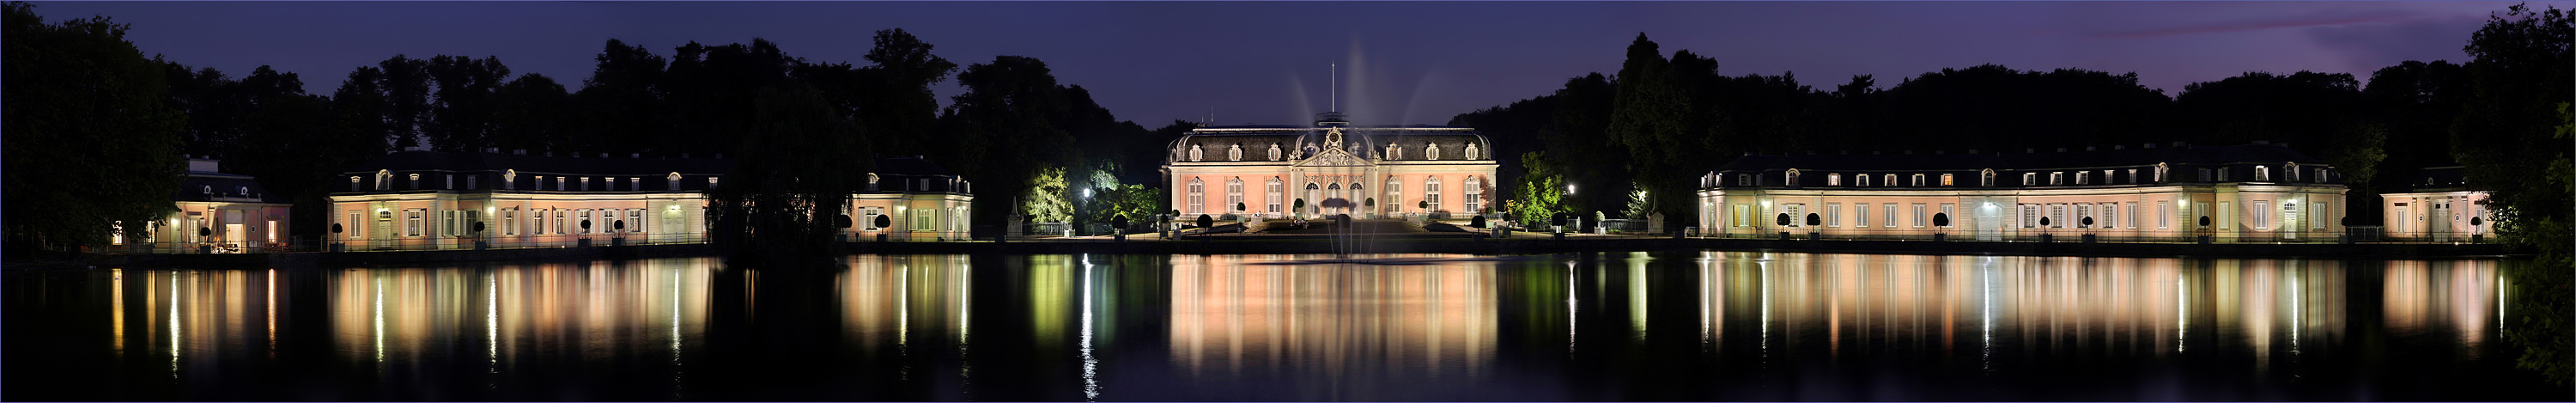 Benrather Schloss...